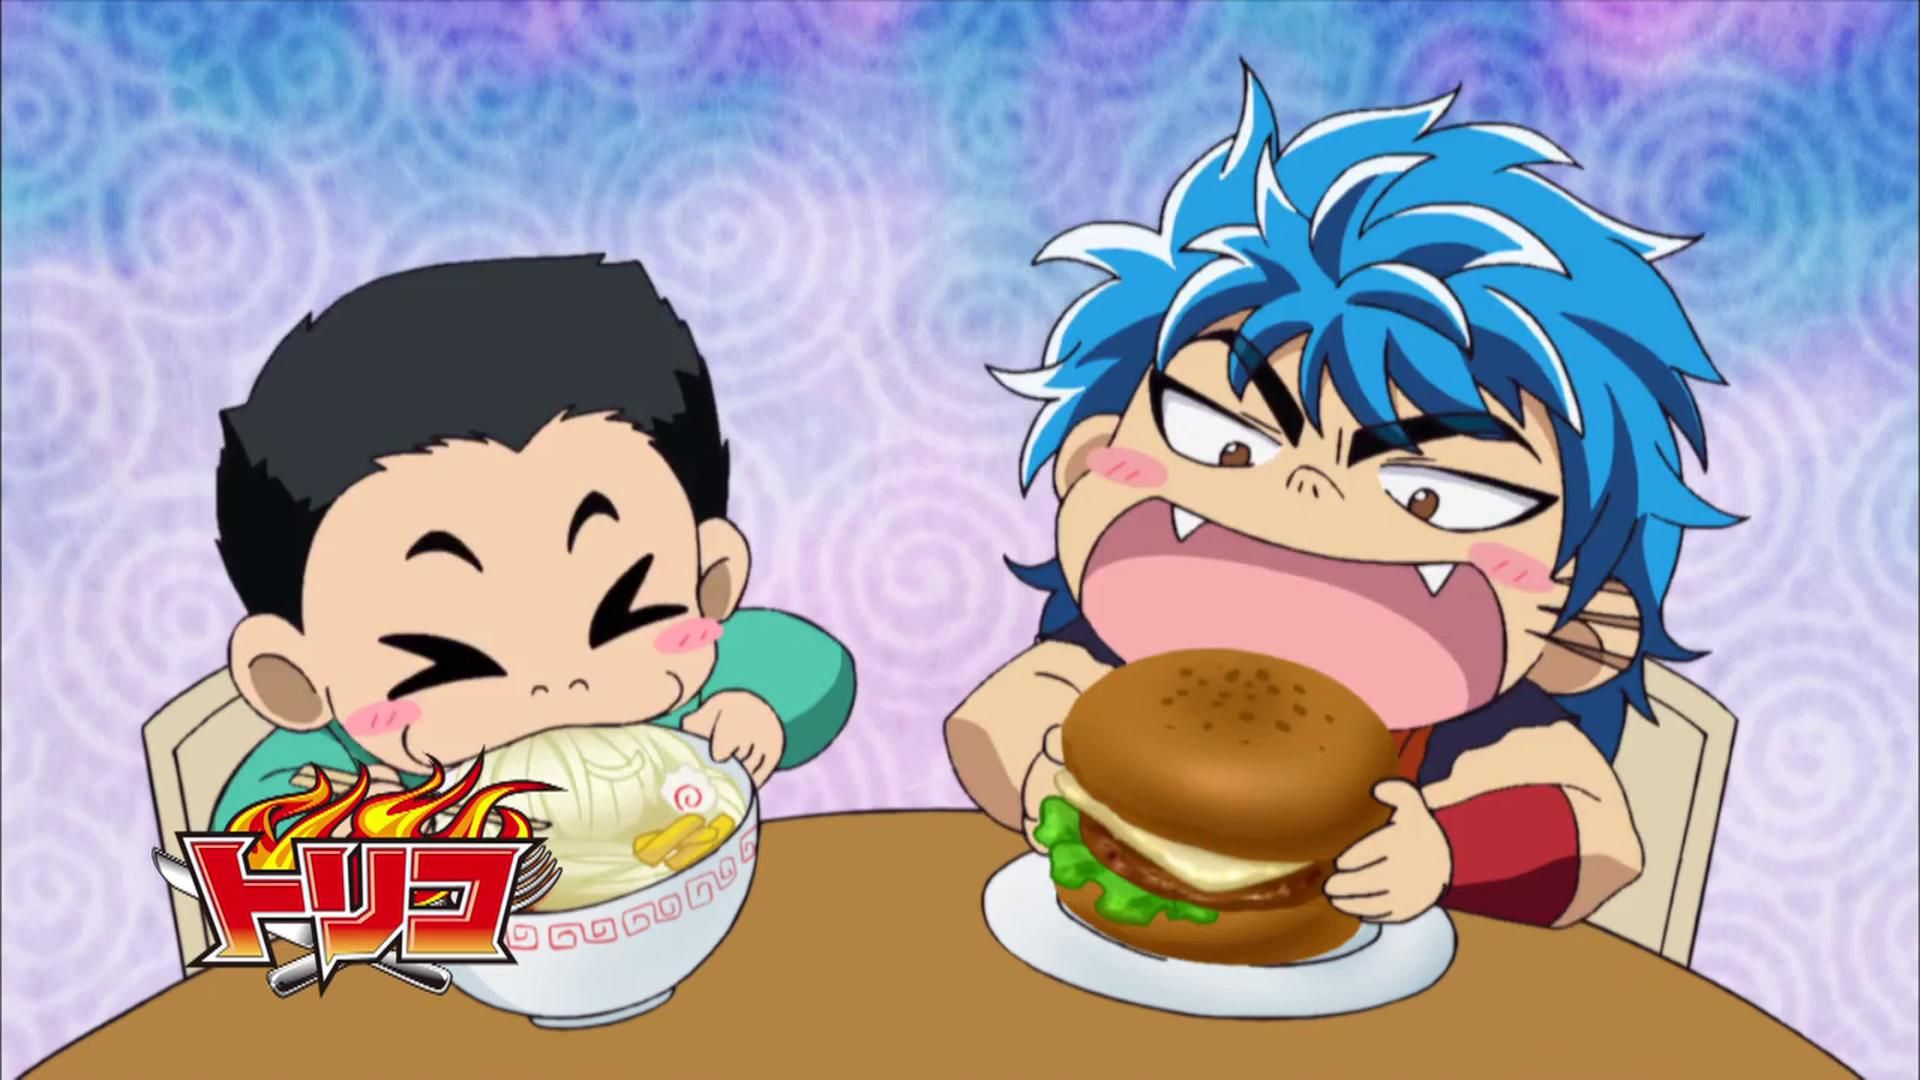 Toriko wallpaper 4 Anime wallpaper, Anime, Wallpaper